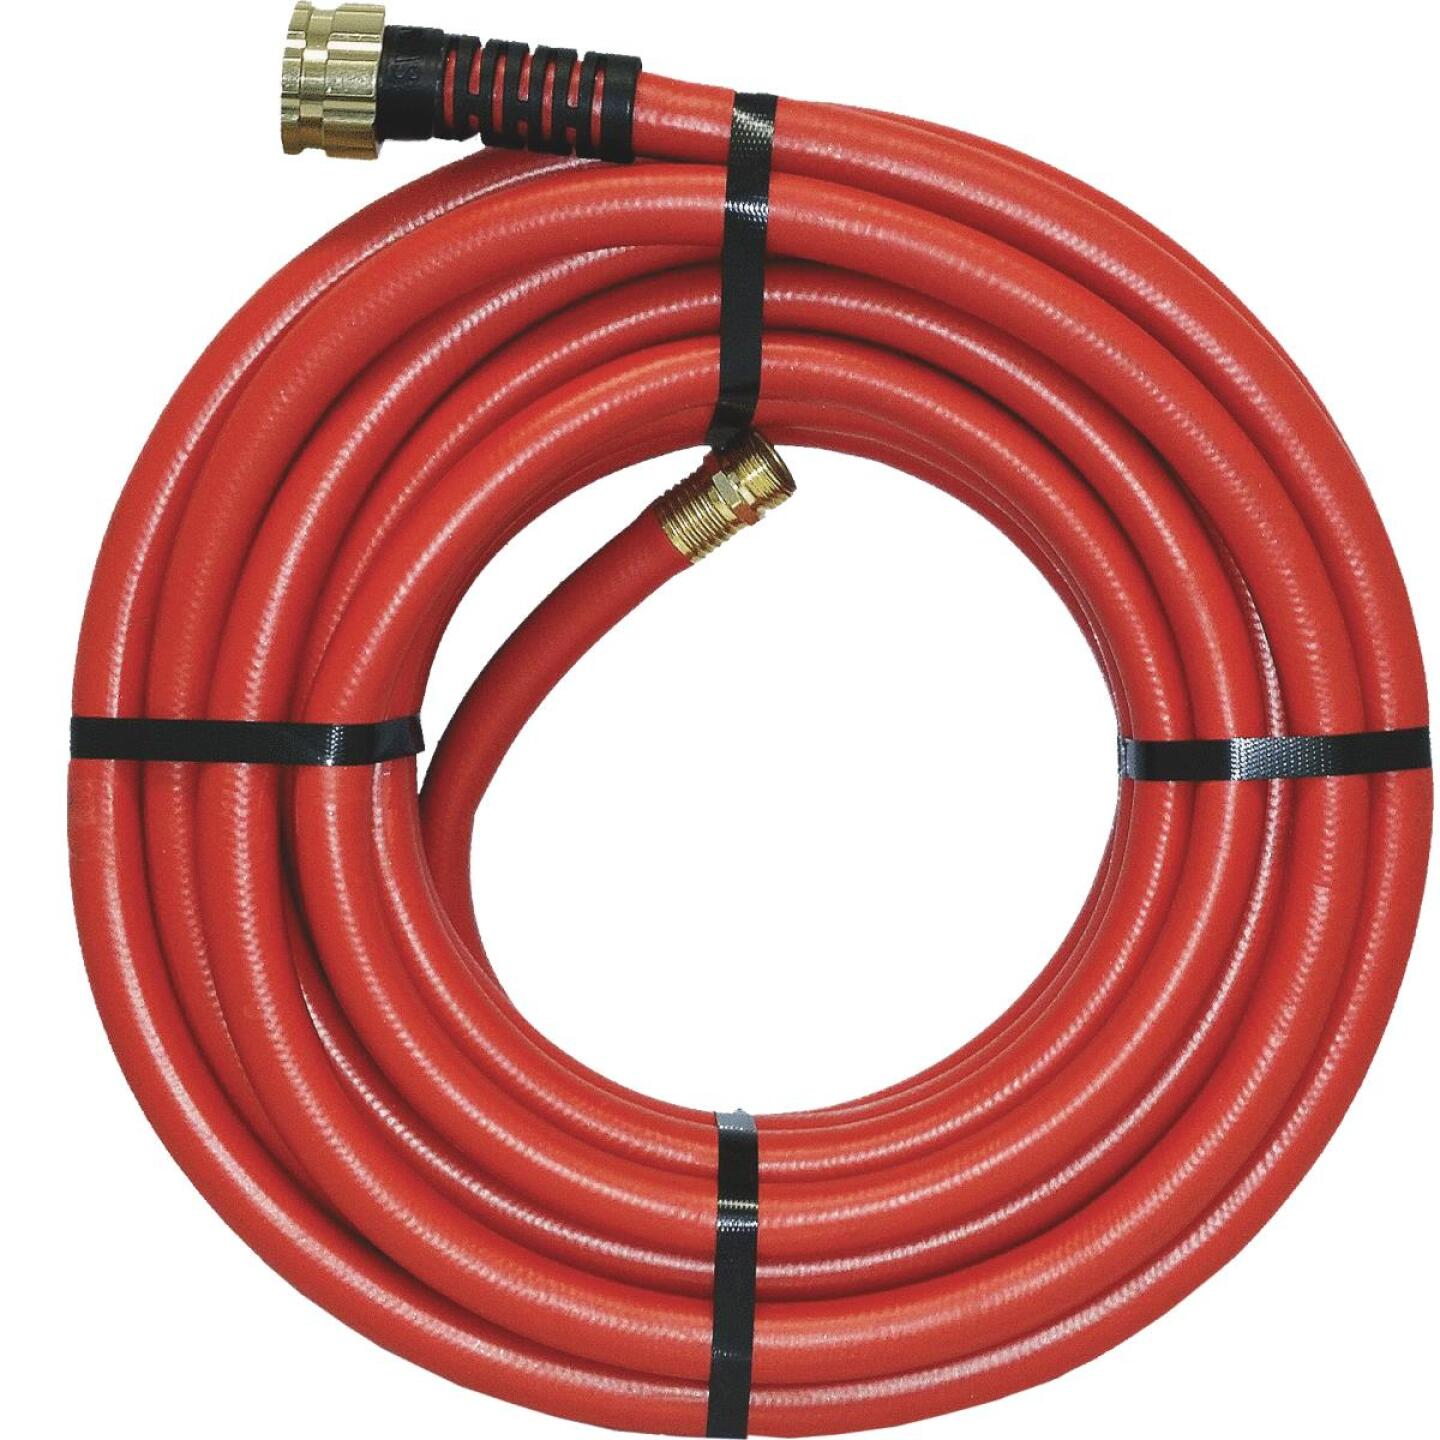 Best Garden 5/8 In. Dia. x 100 Ft. L. Drinking Water Safe Hot Water Hose Image 2